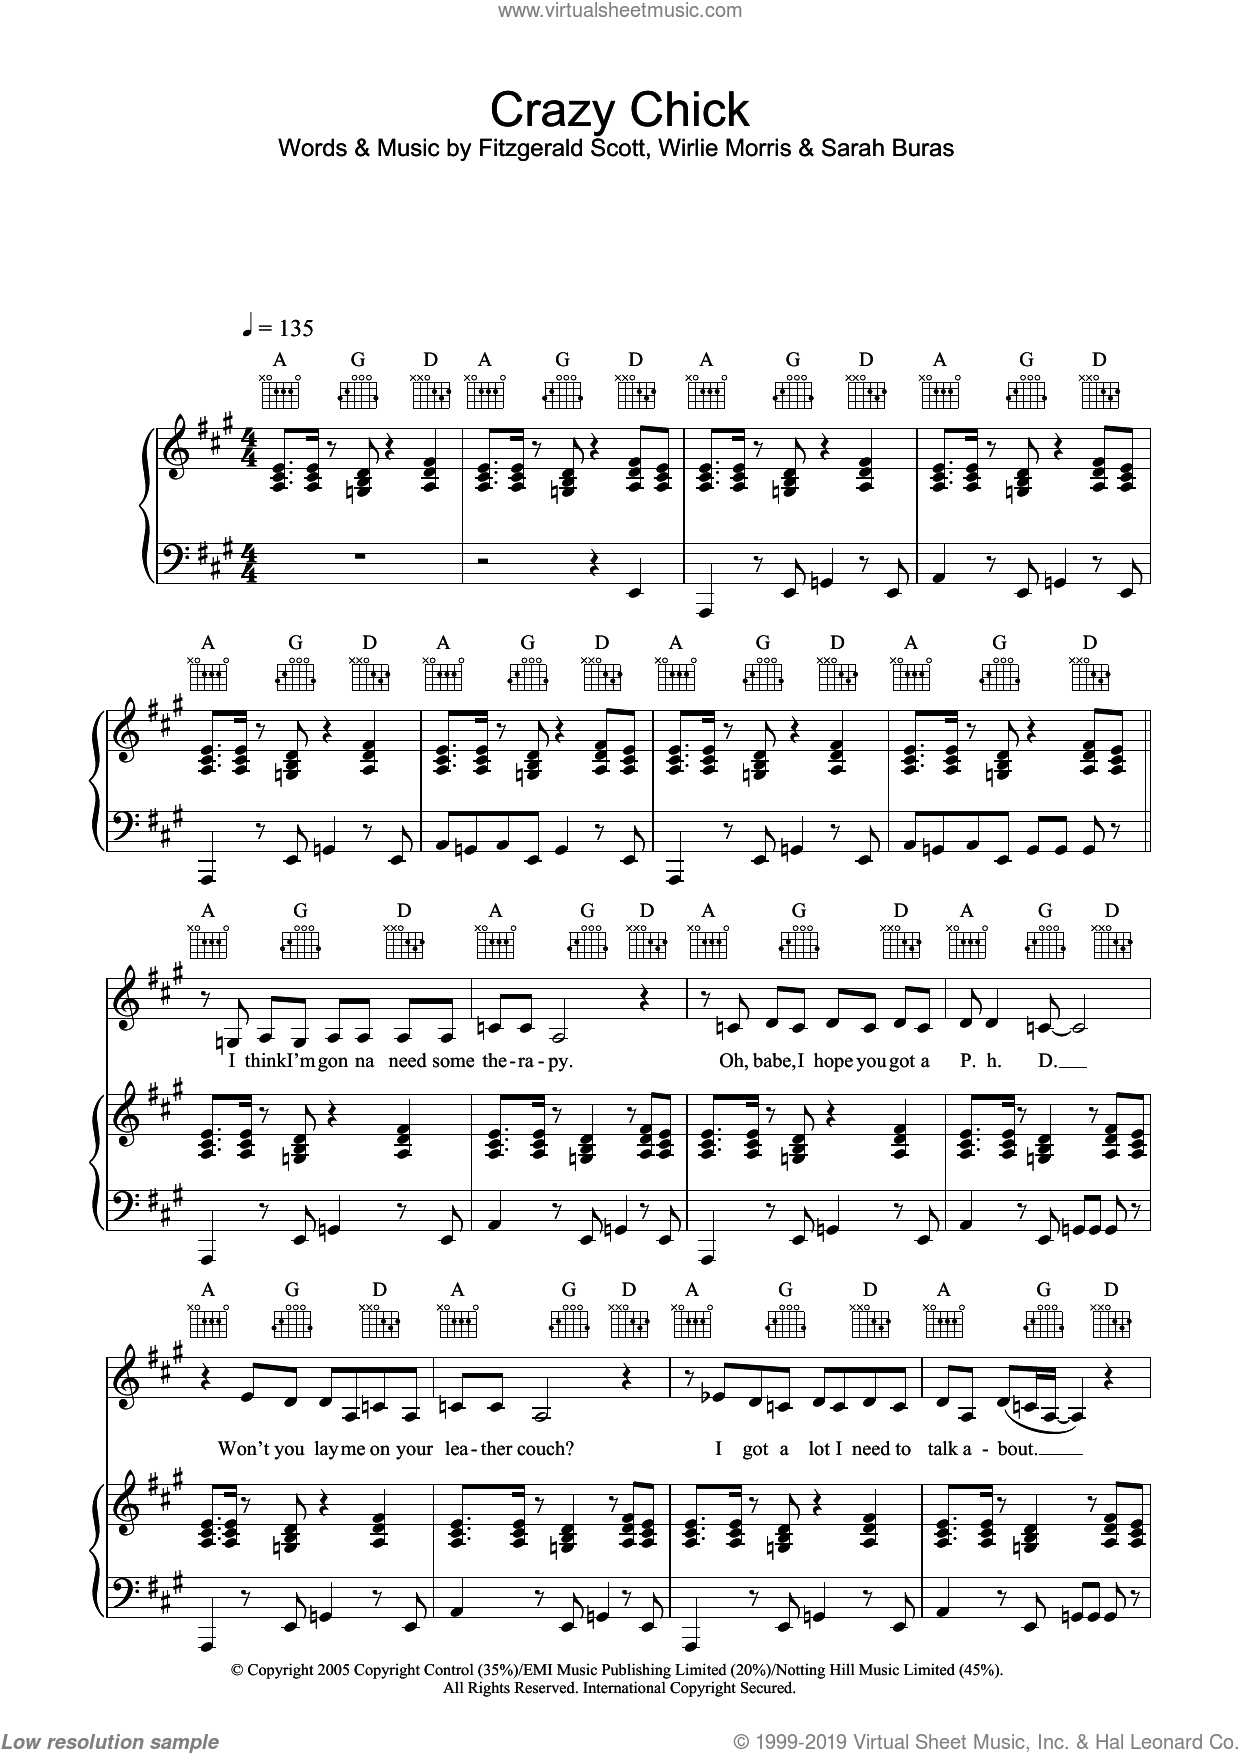 Crazy Chick sheet music for voice, piano or guitar by Wirlie Morris